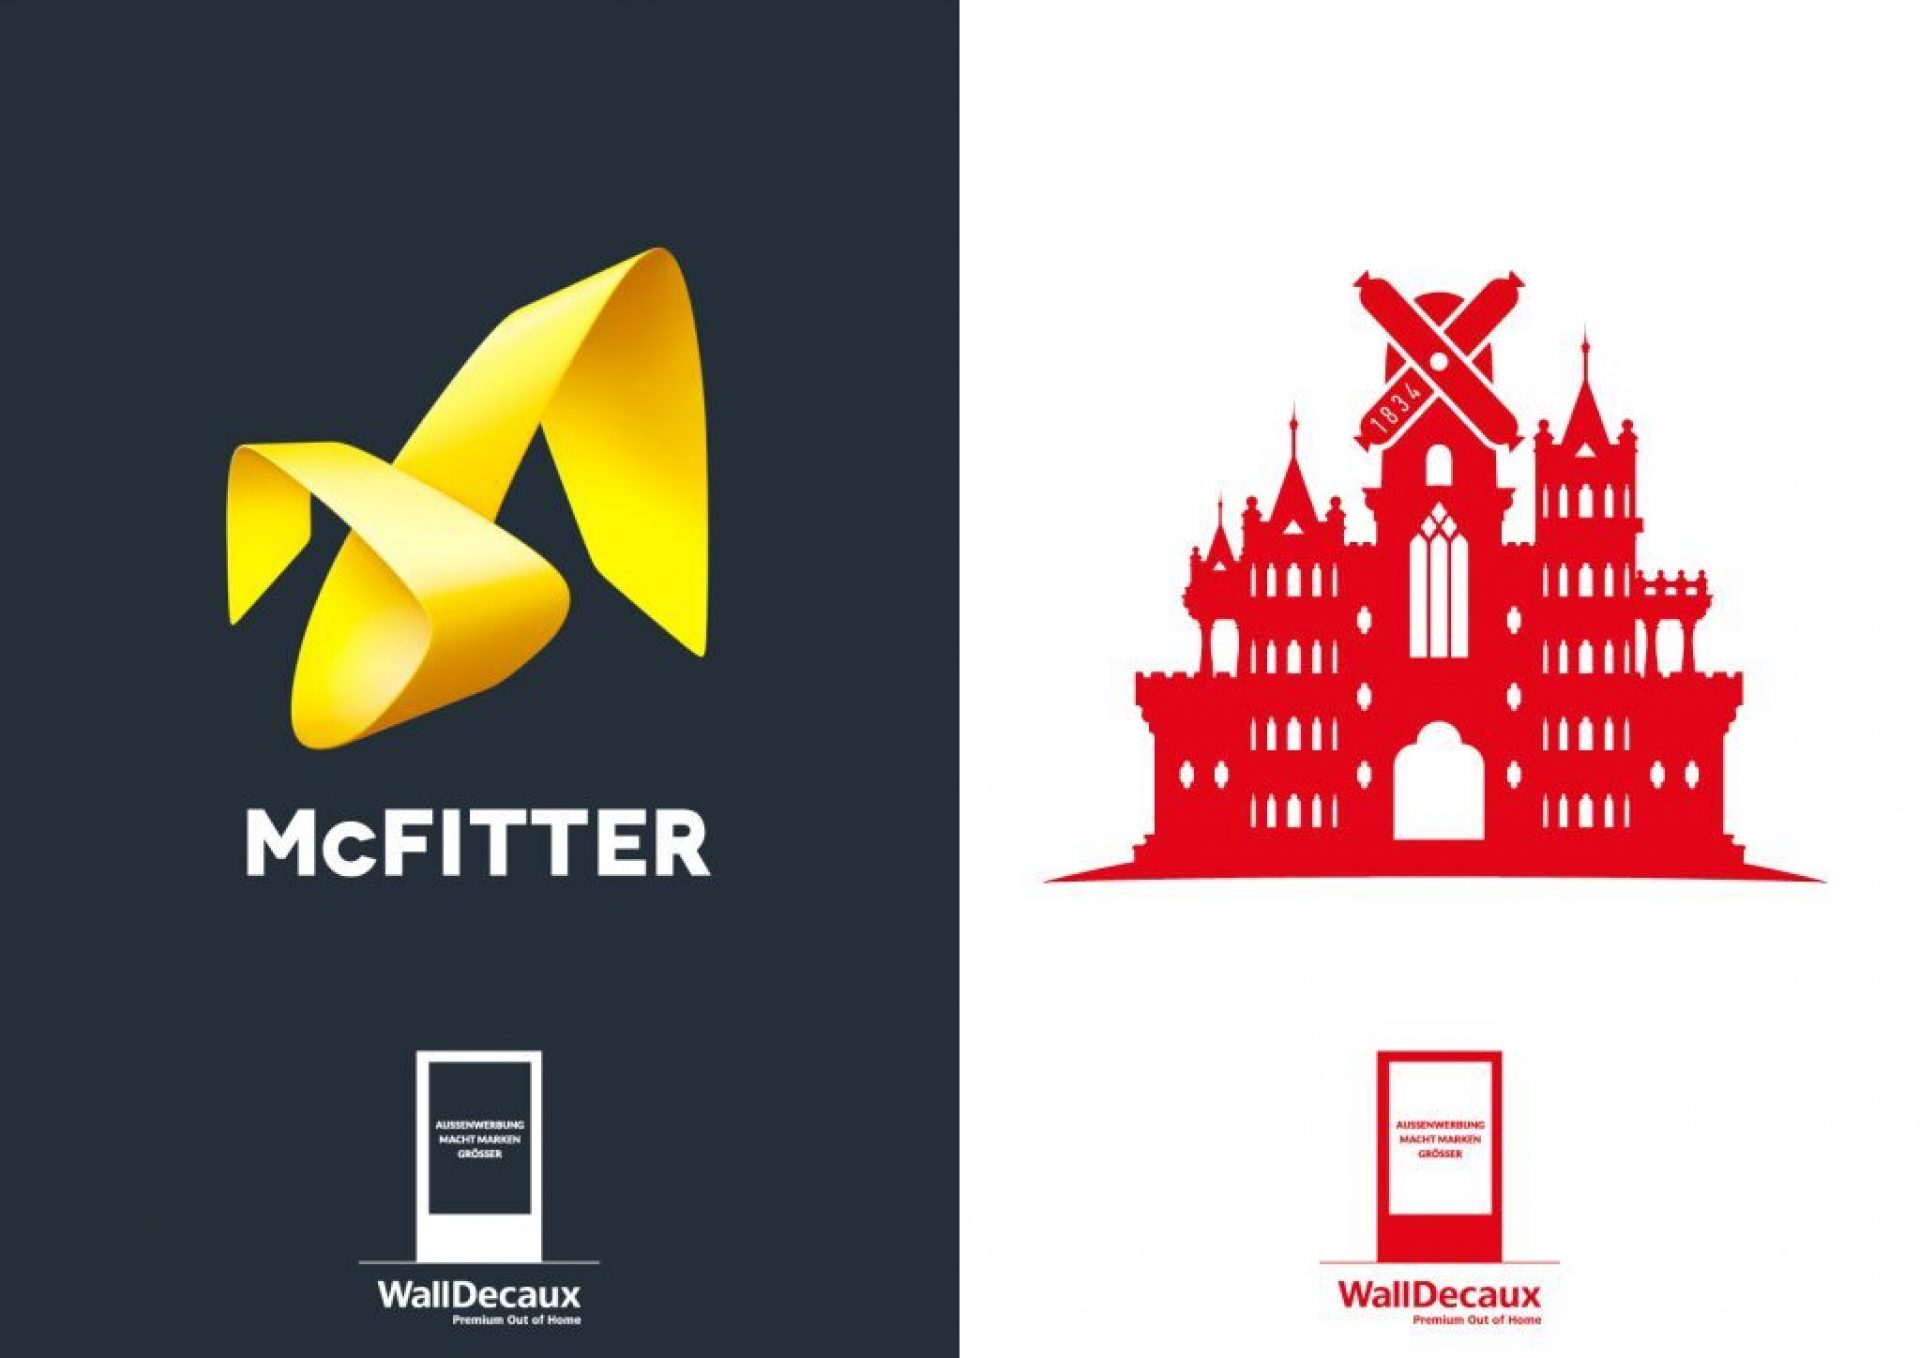 Make the logo bigger? Only with WallDecaux.